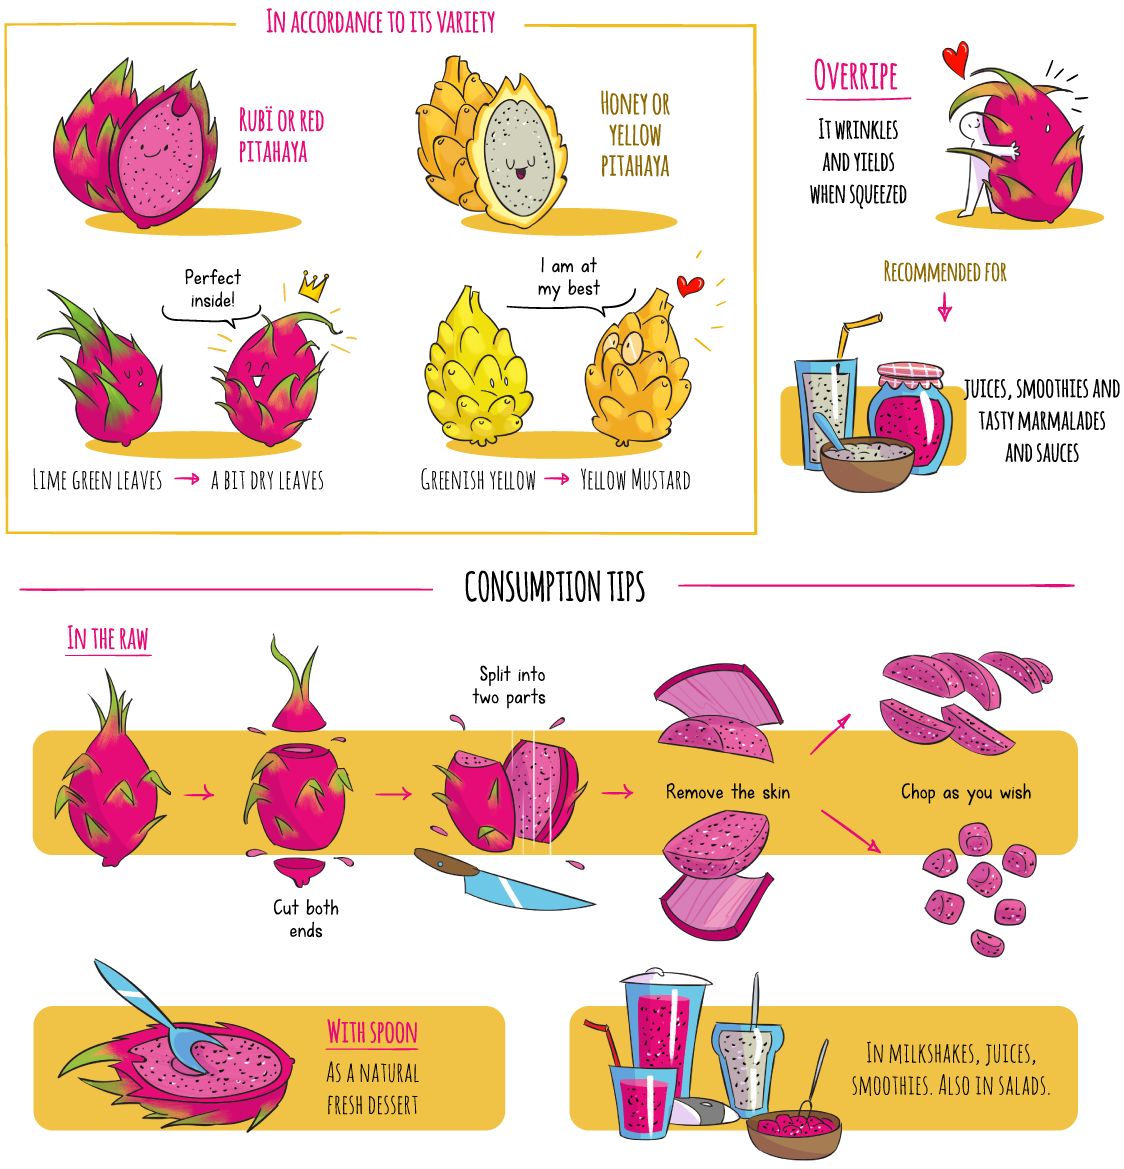 Illustrations of the rubï or red pitaya